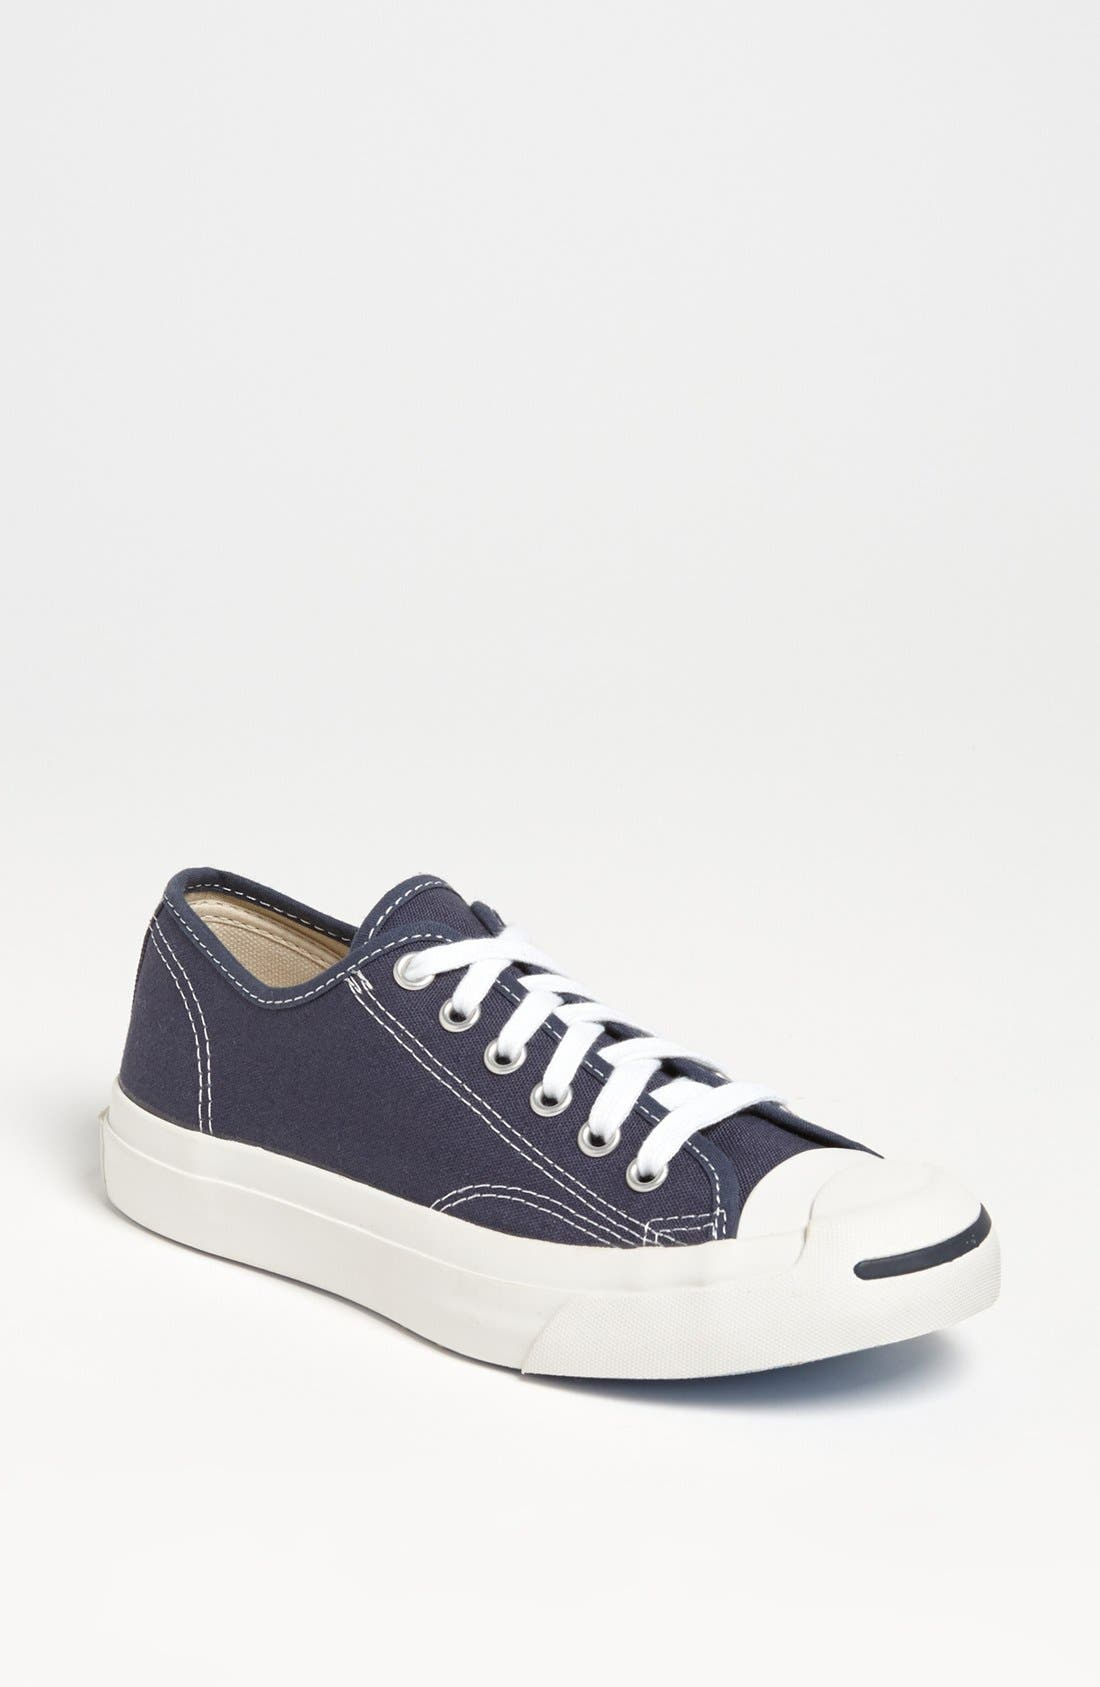 'Jack Purcell' Sneaker,                             Main thumbnail 1, color,